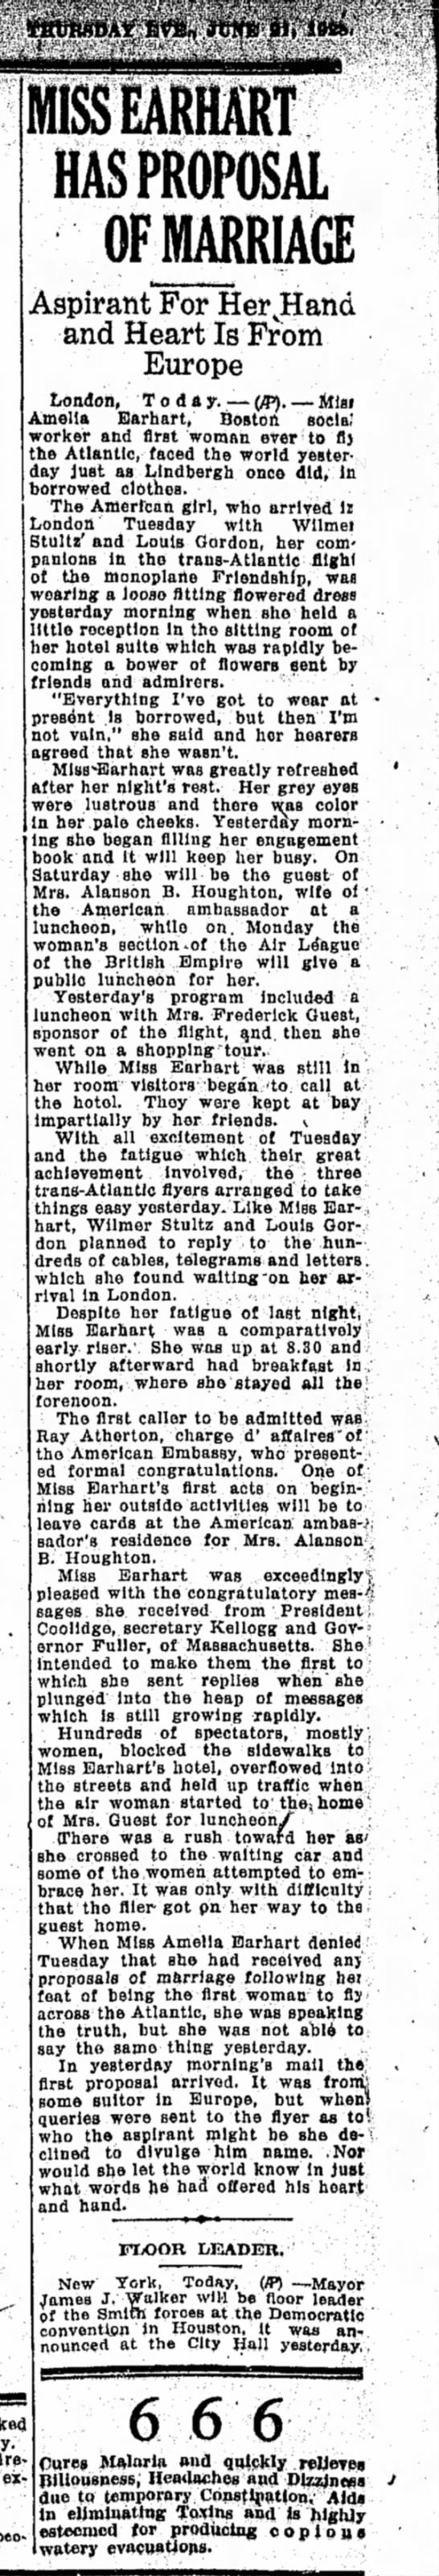 Miss earhart has proposal of marriage - MISS EARH ART HAS PROPOSAL OF MARRIAGE Aspirant...